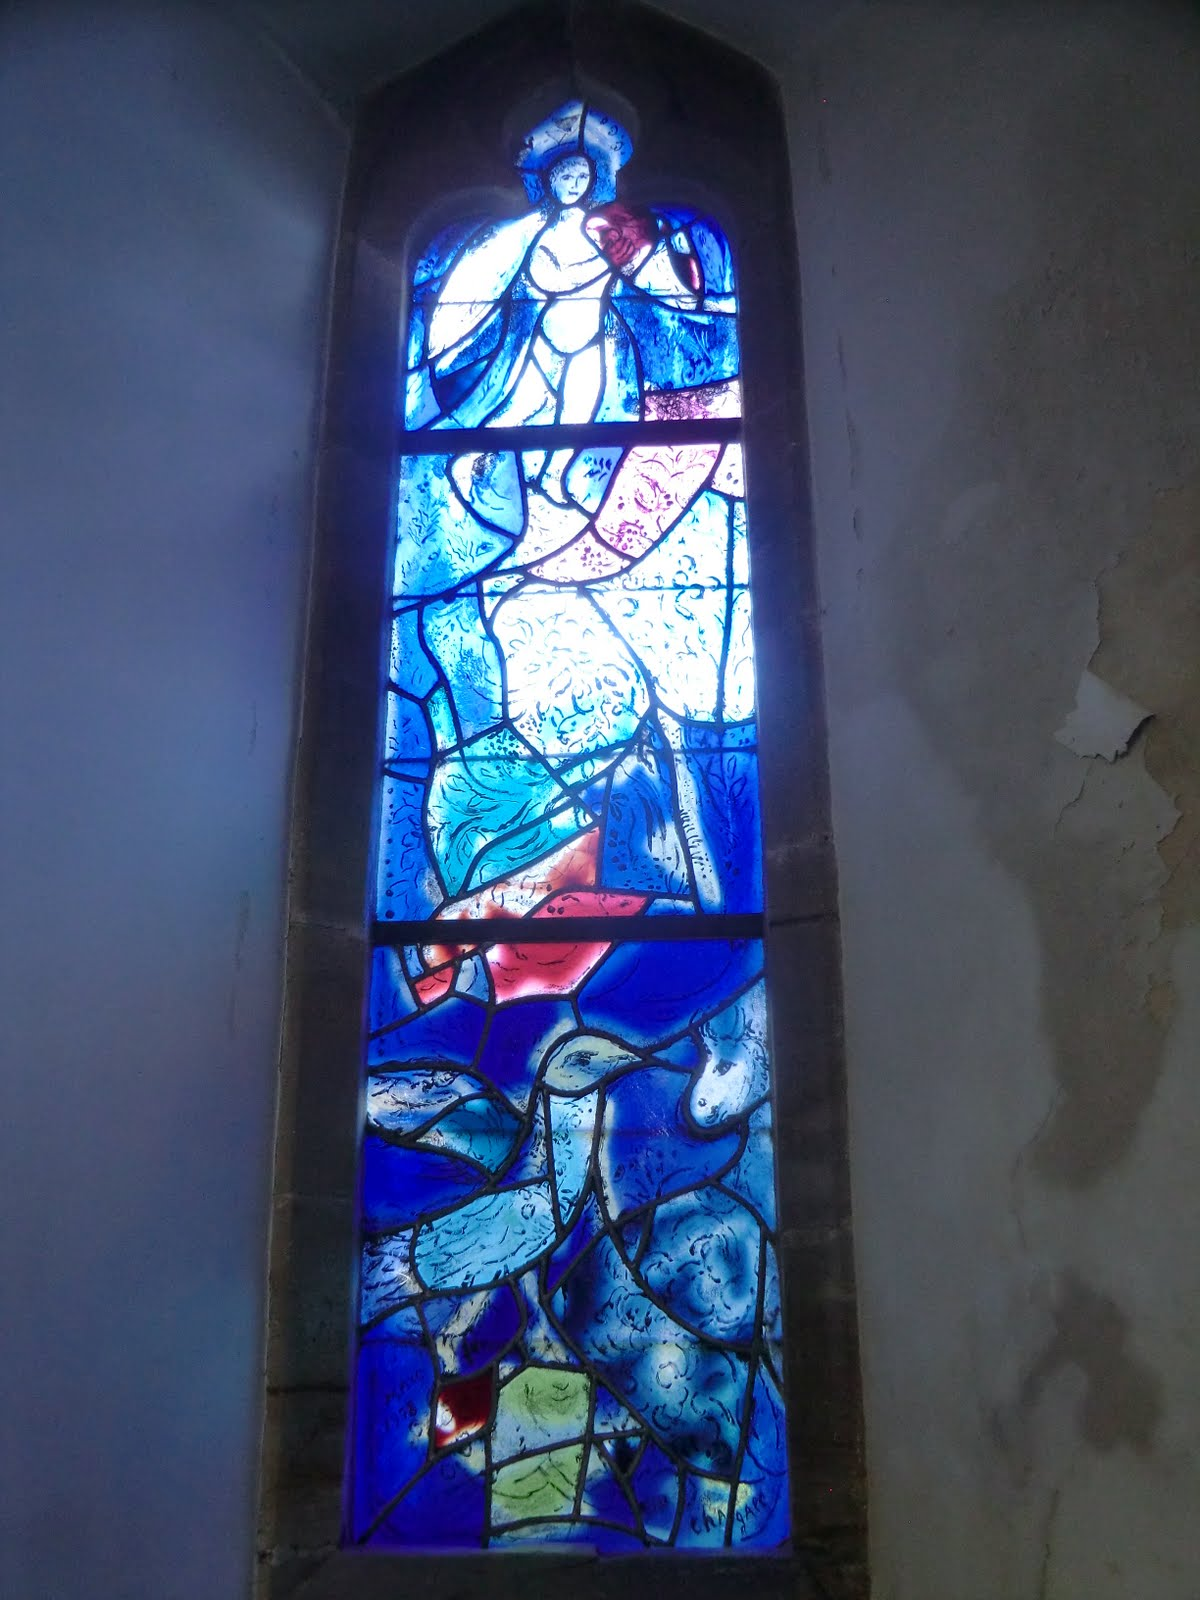 CIMG1564 Chagall window #6, All Saints church